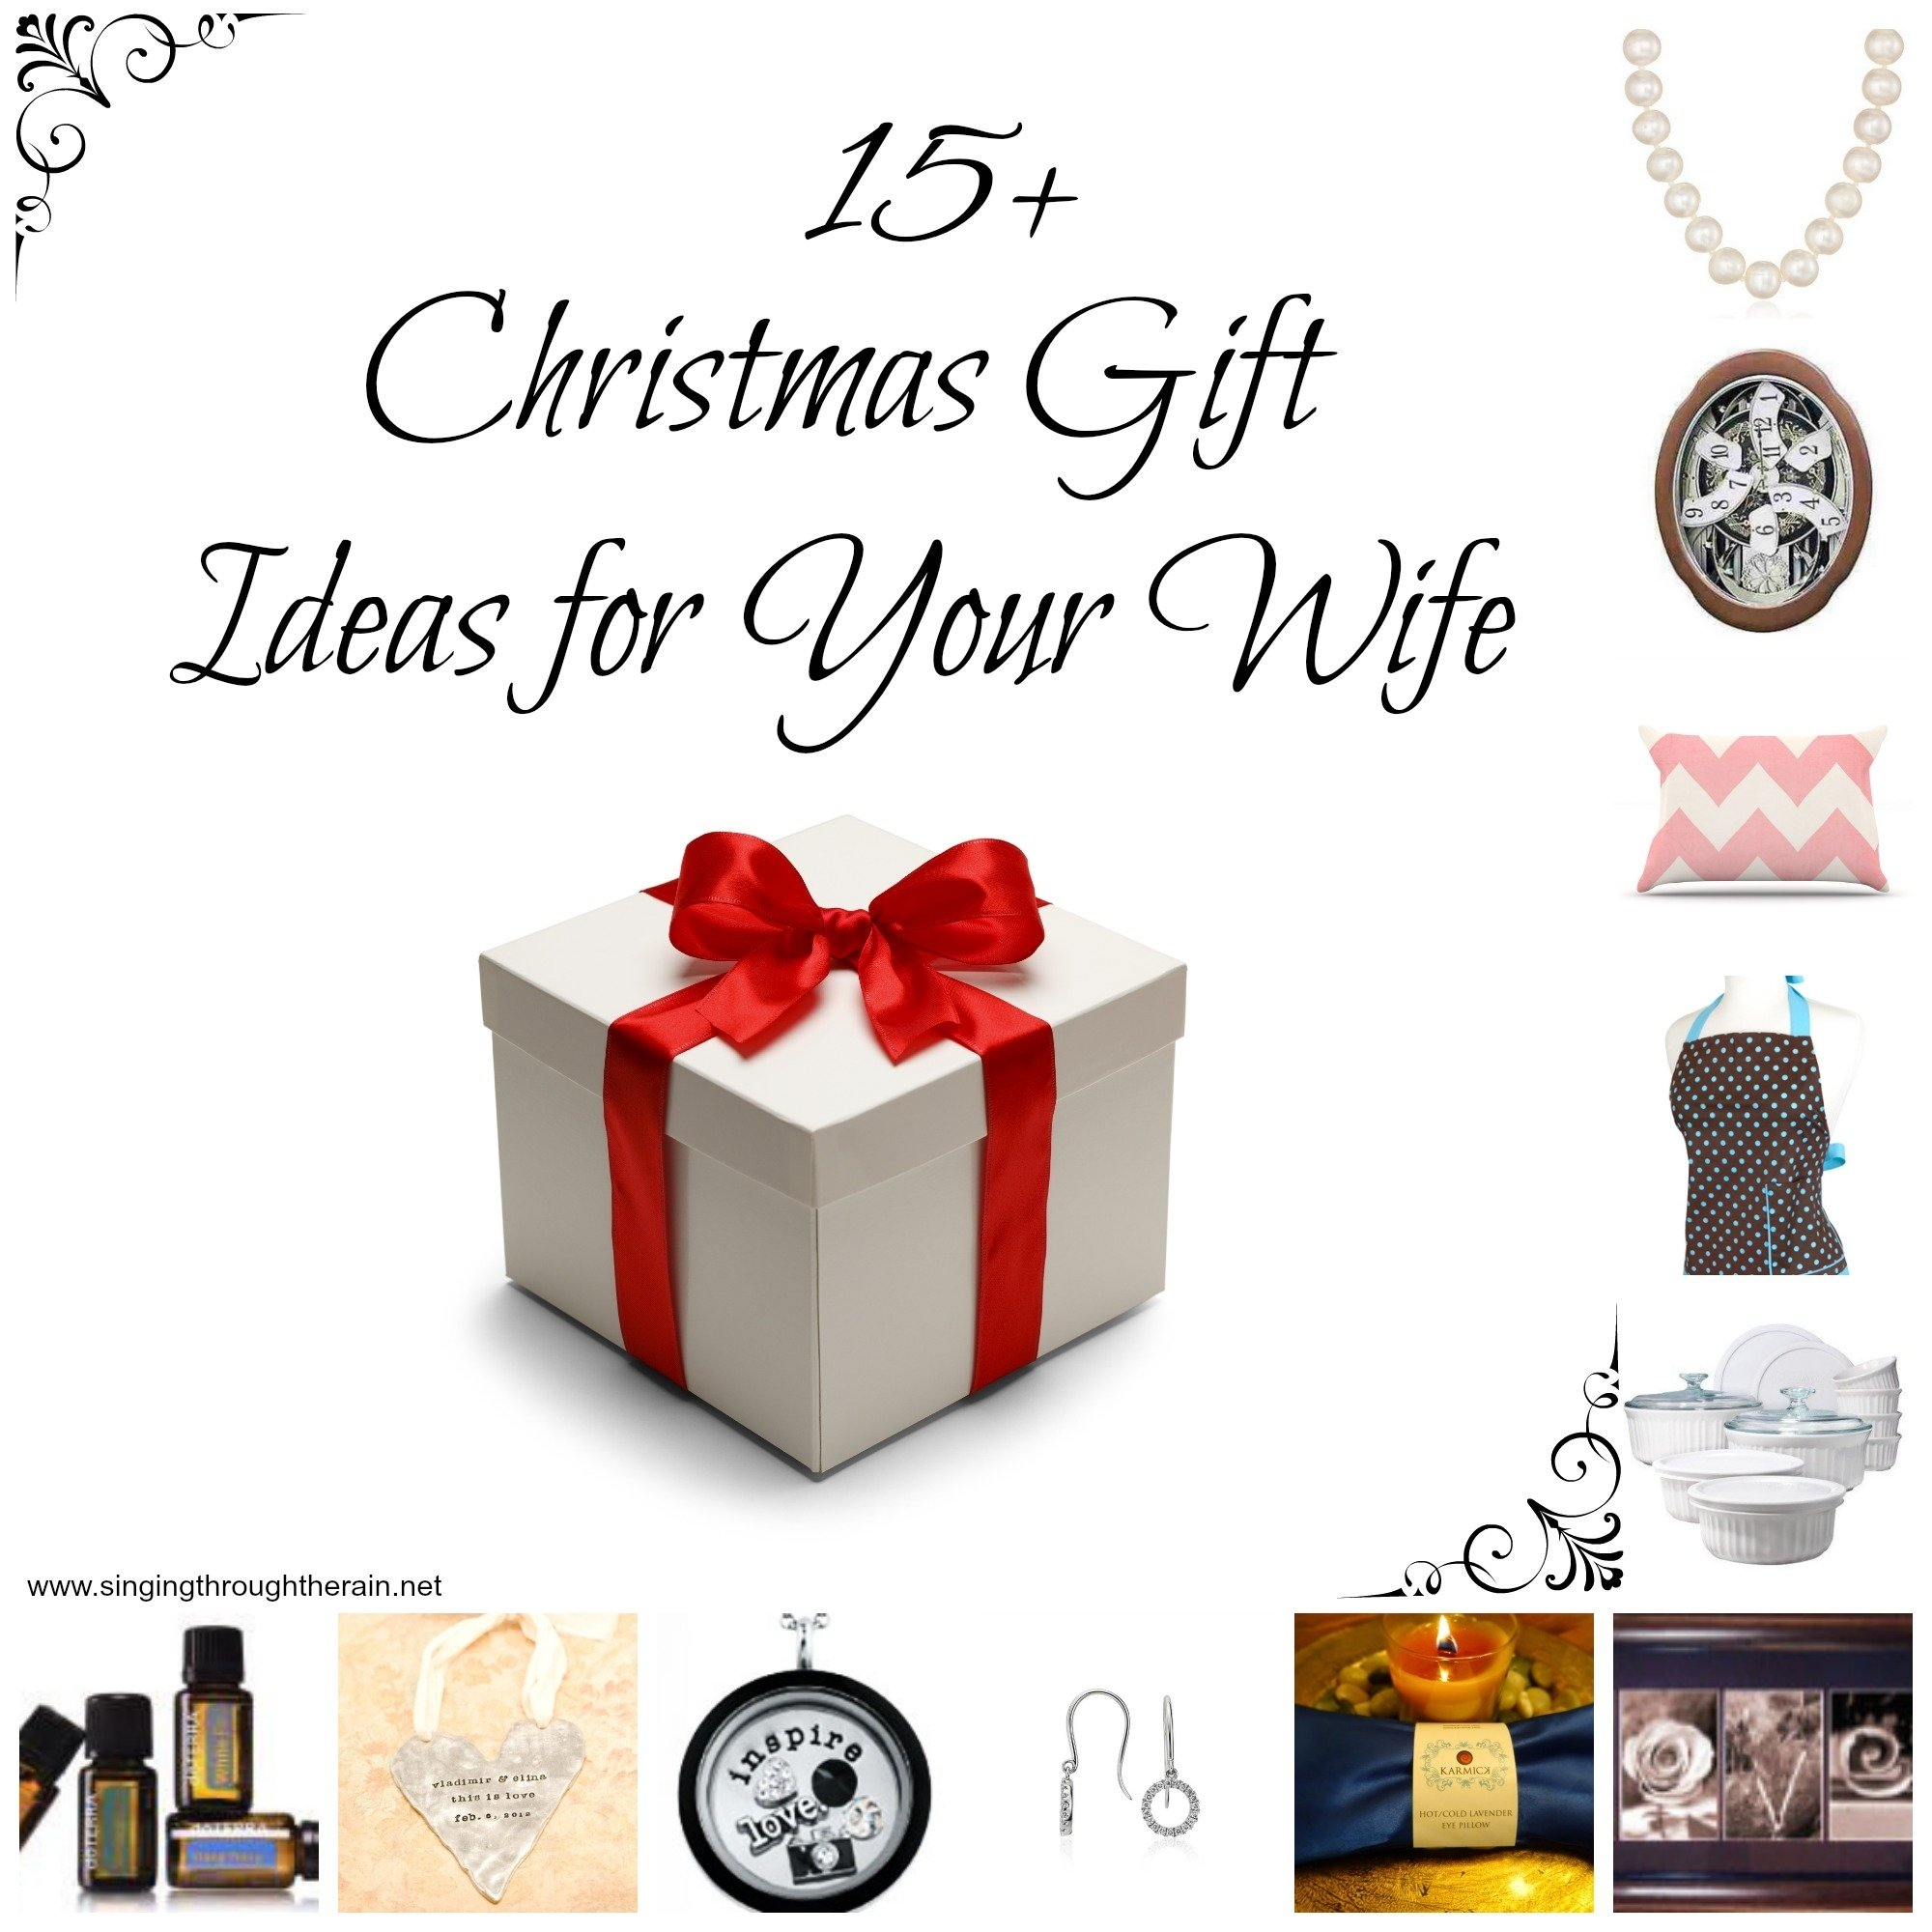 10 Attractive Gift Ideas For The Wife 15 christmas gift ideas for your wife singing through the rain 6 2021